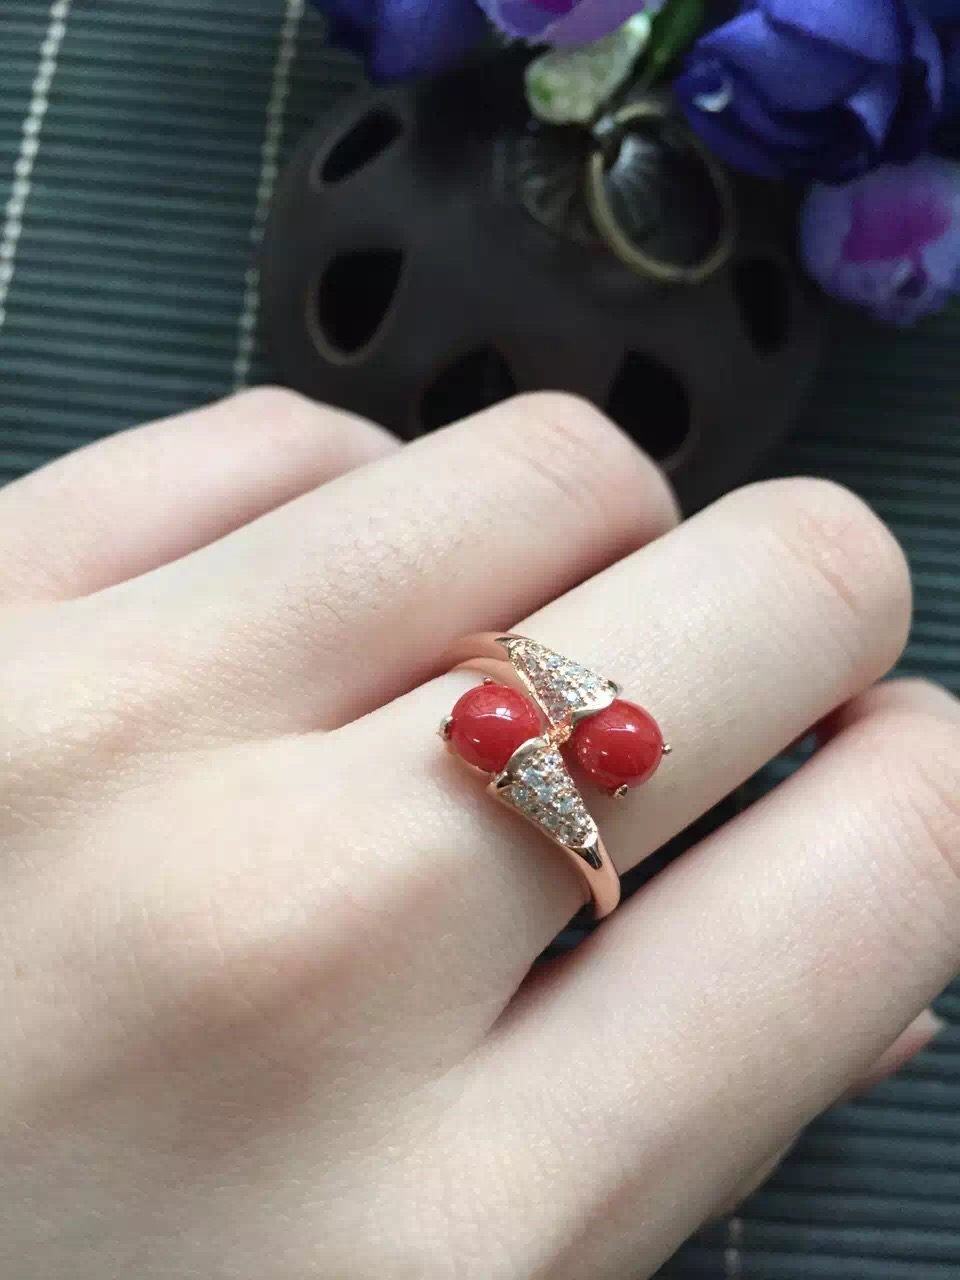 on sale discount girls gift mum birthday present real 925 sterling silver natural red coral ring egg surfce 5*5mm